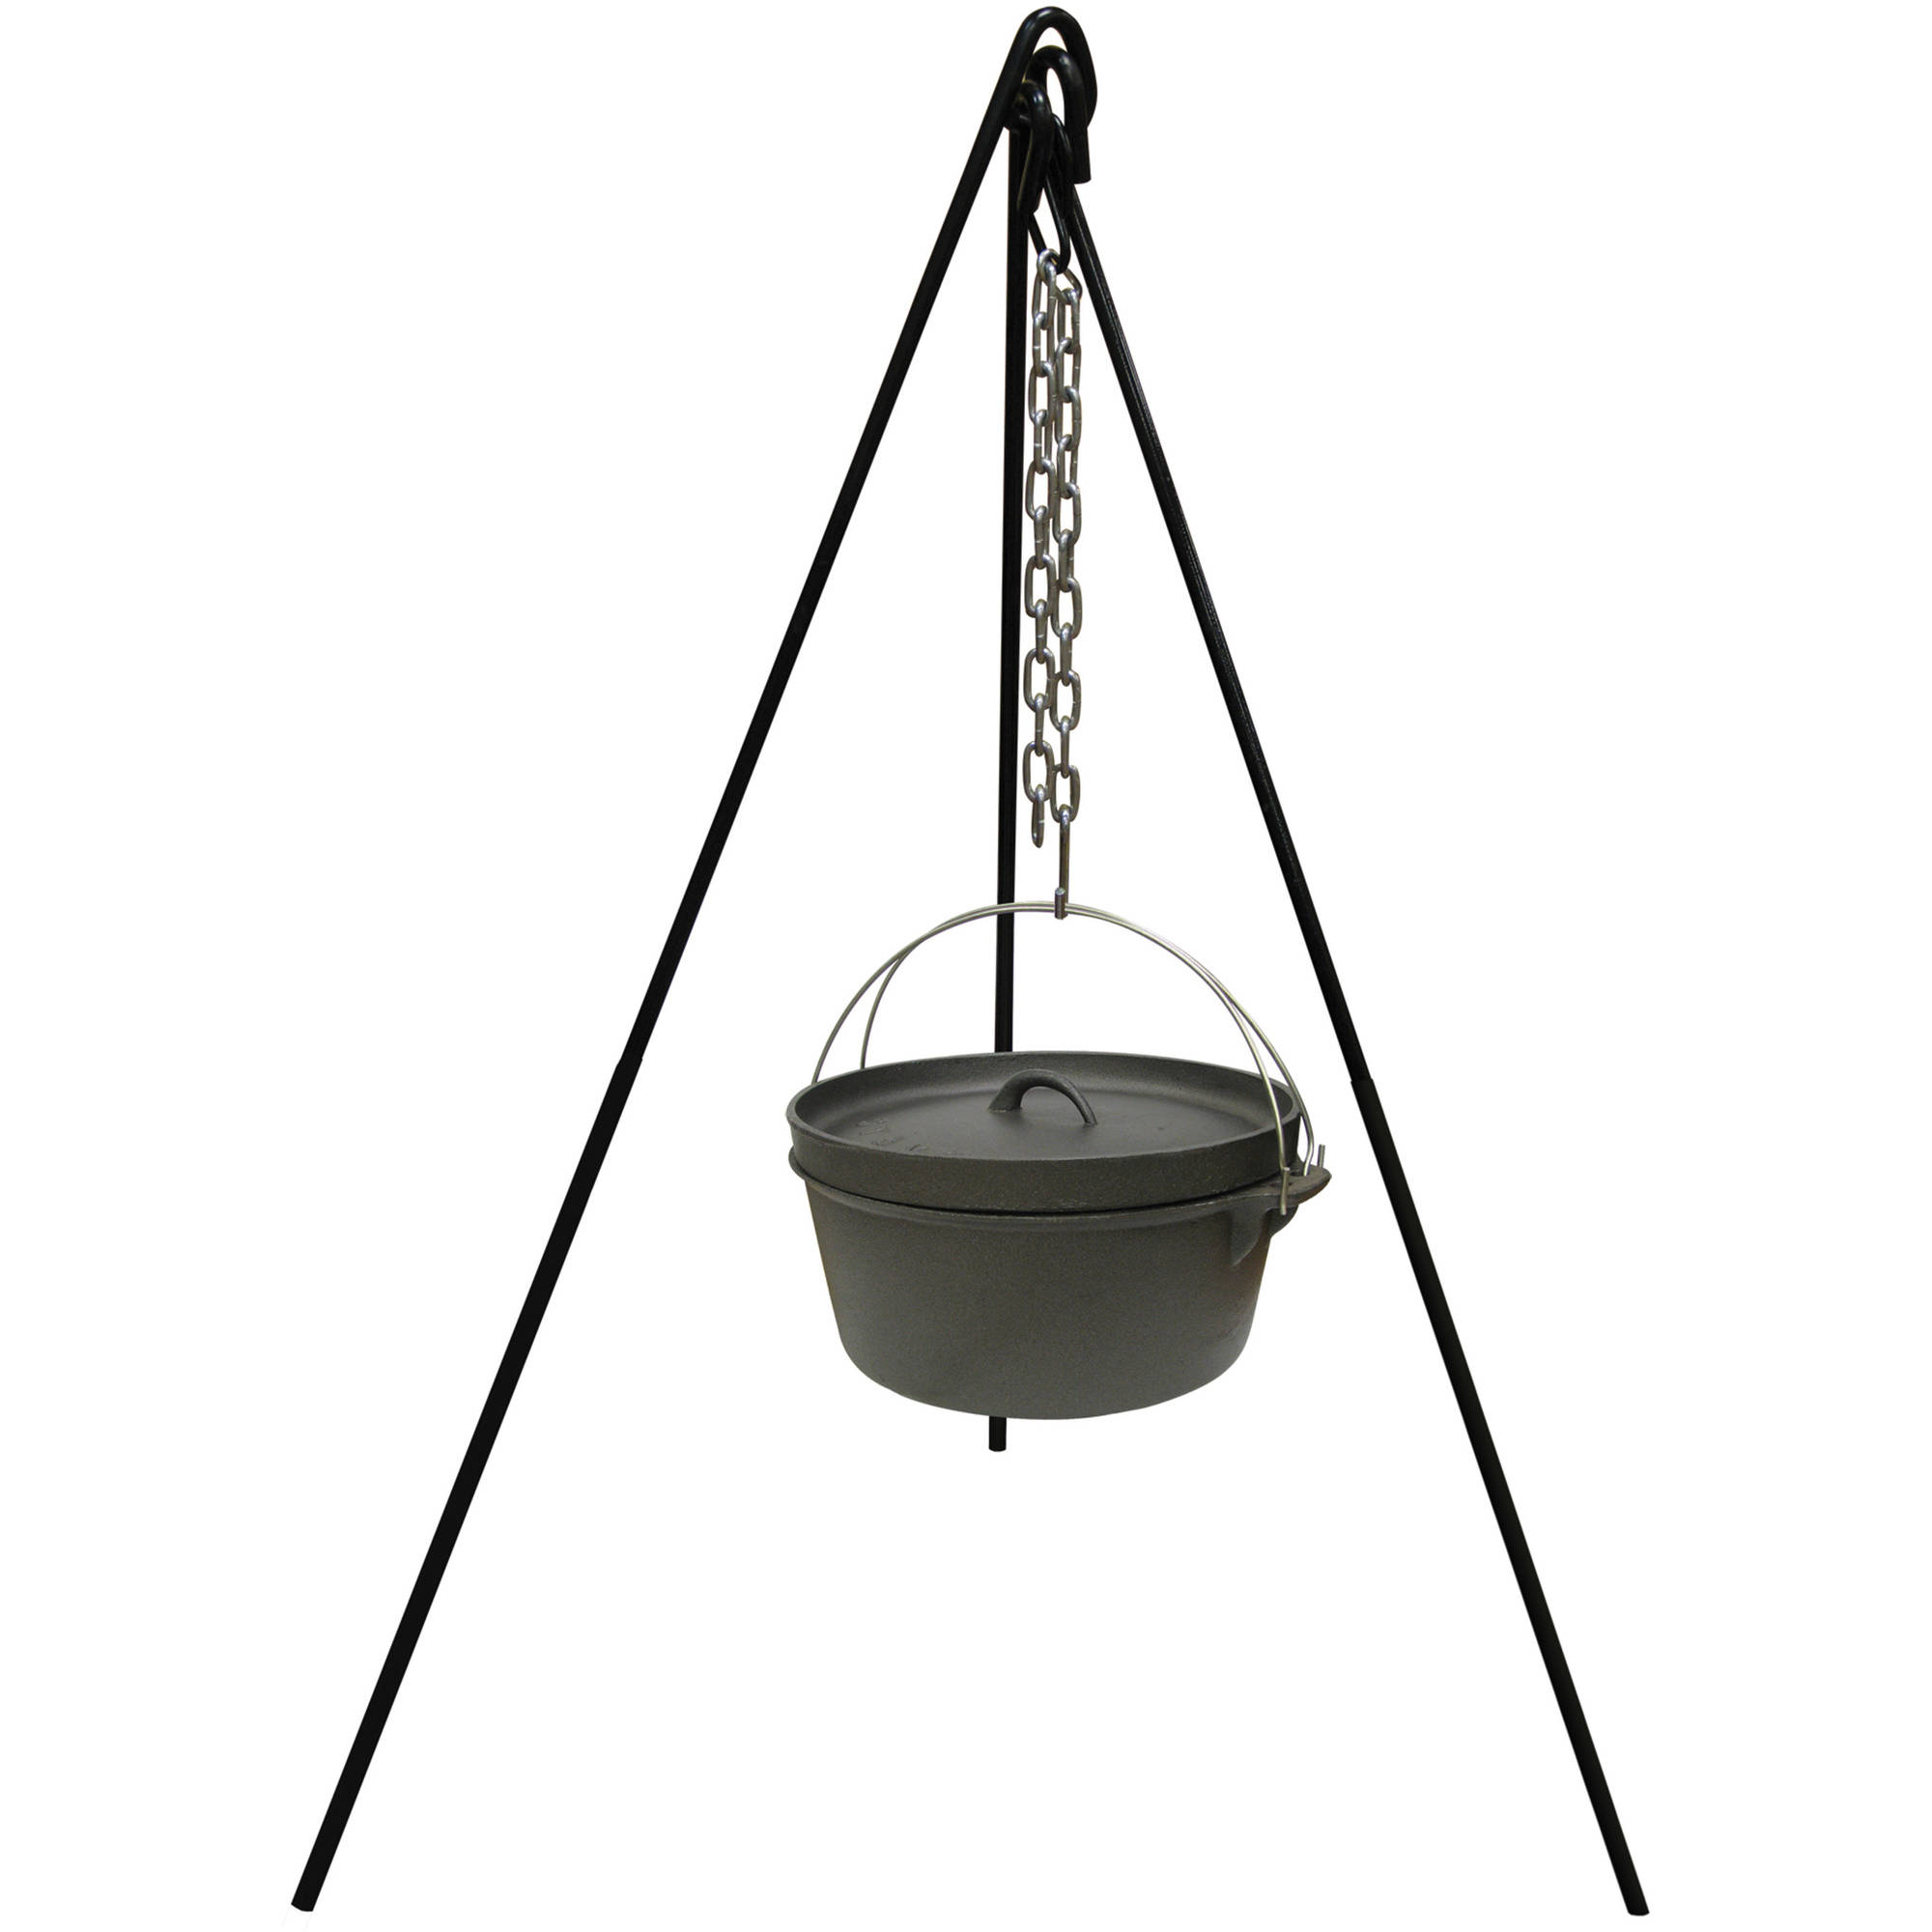 Stansport Cast Iron Camp Fire Tripod Image 1 of 2